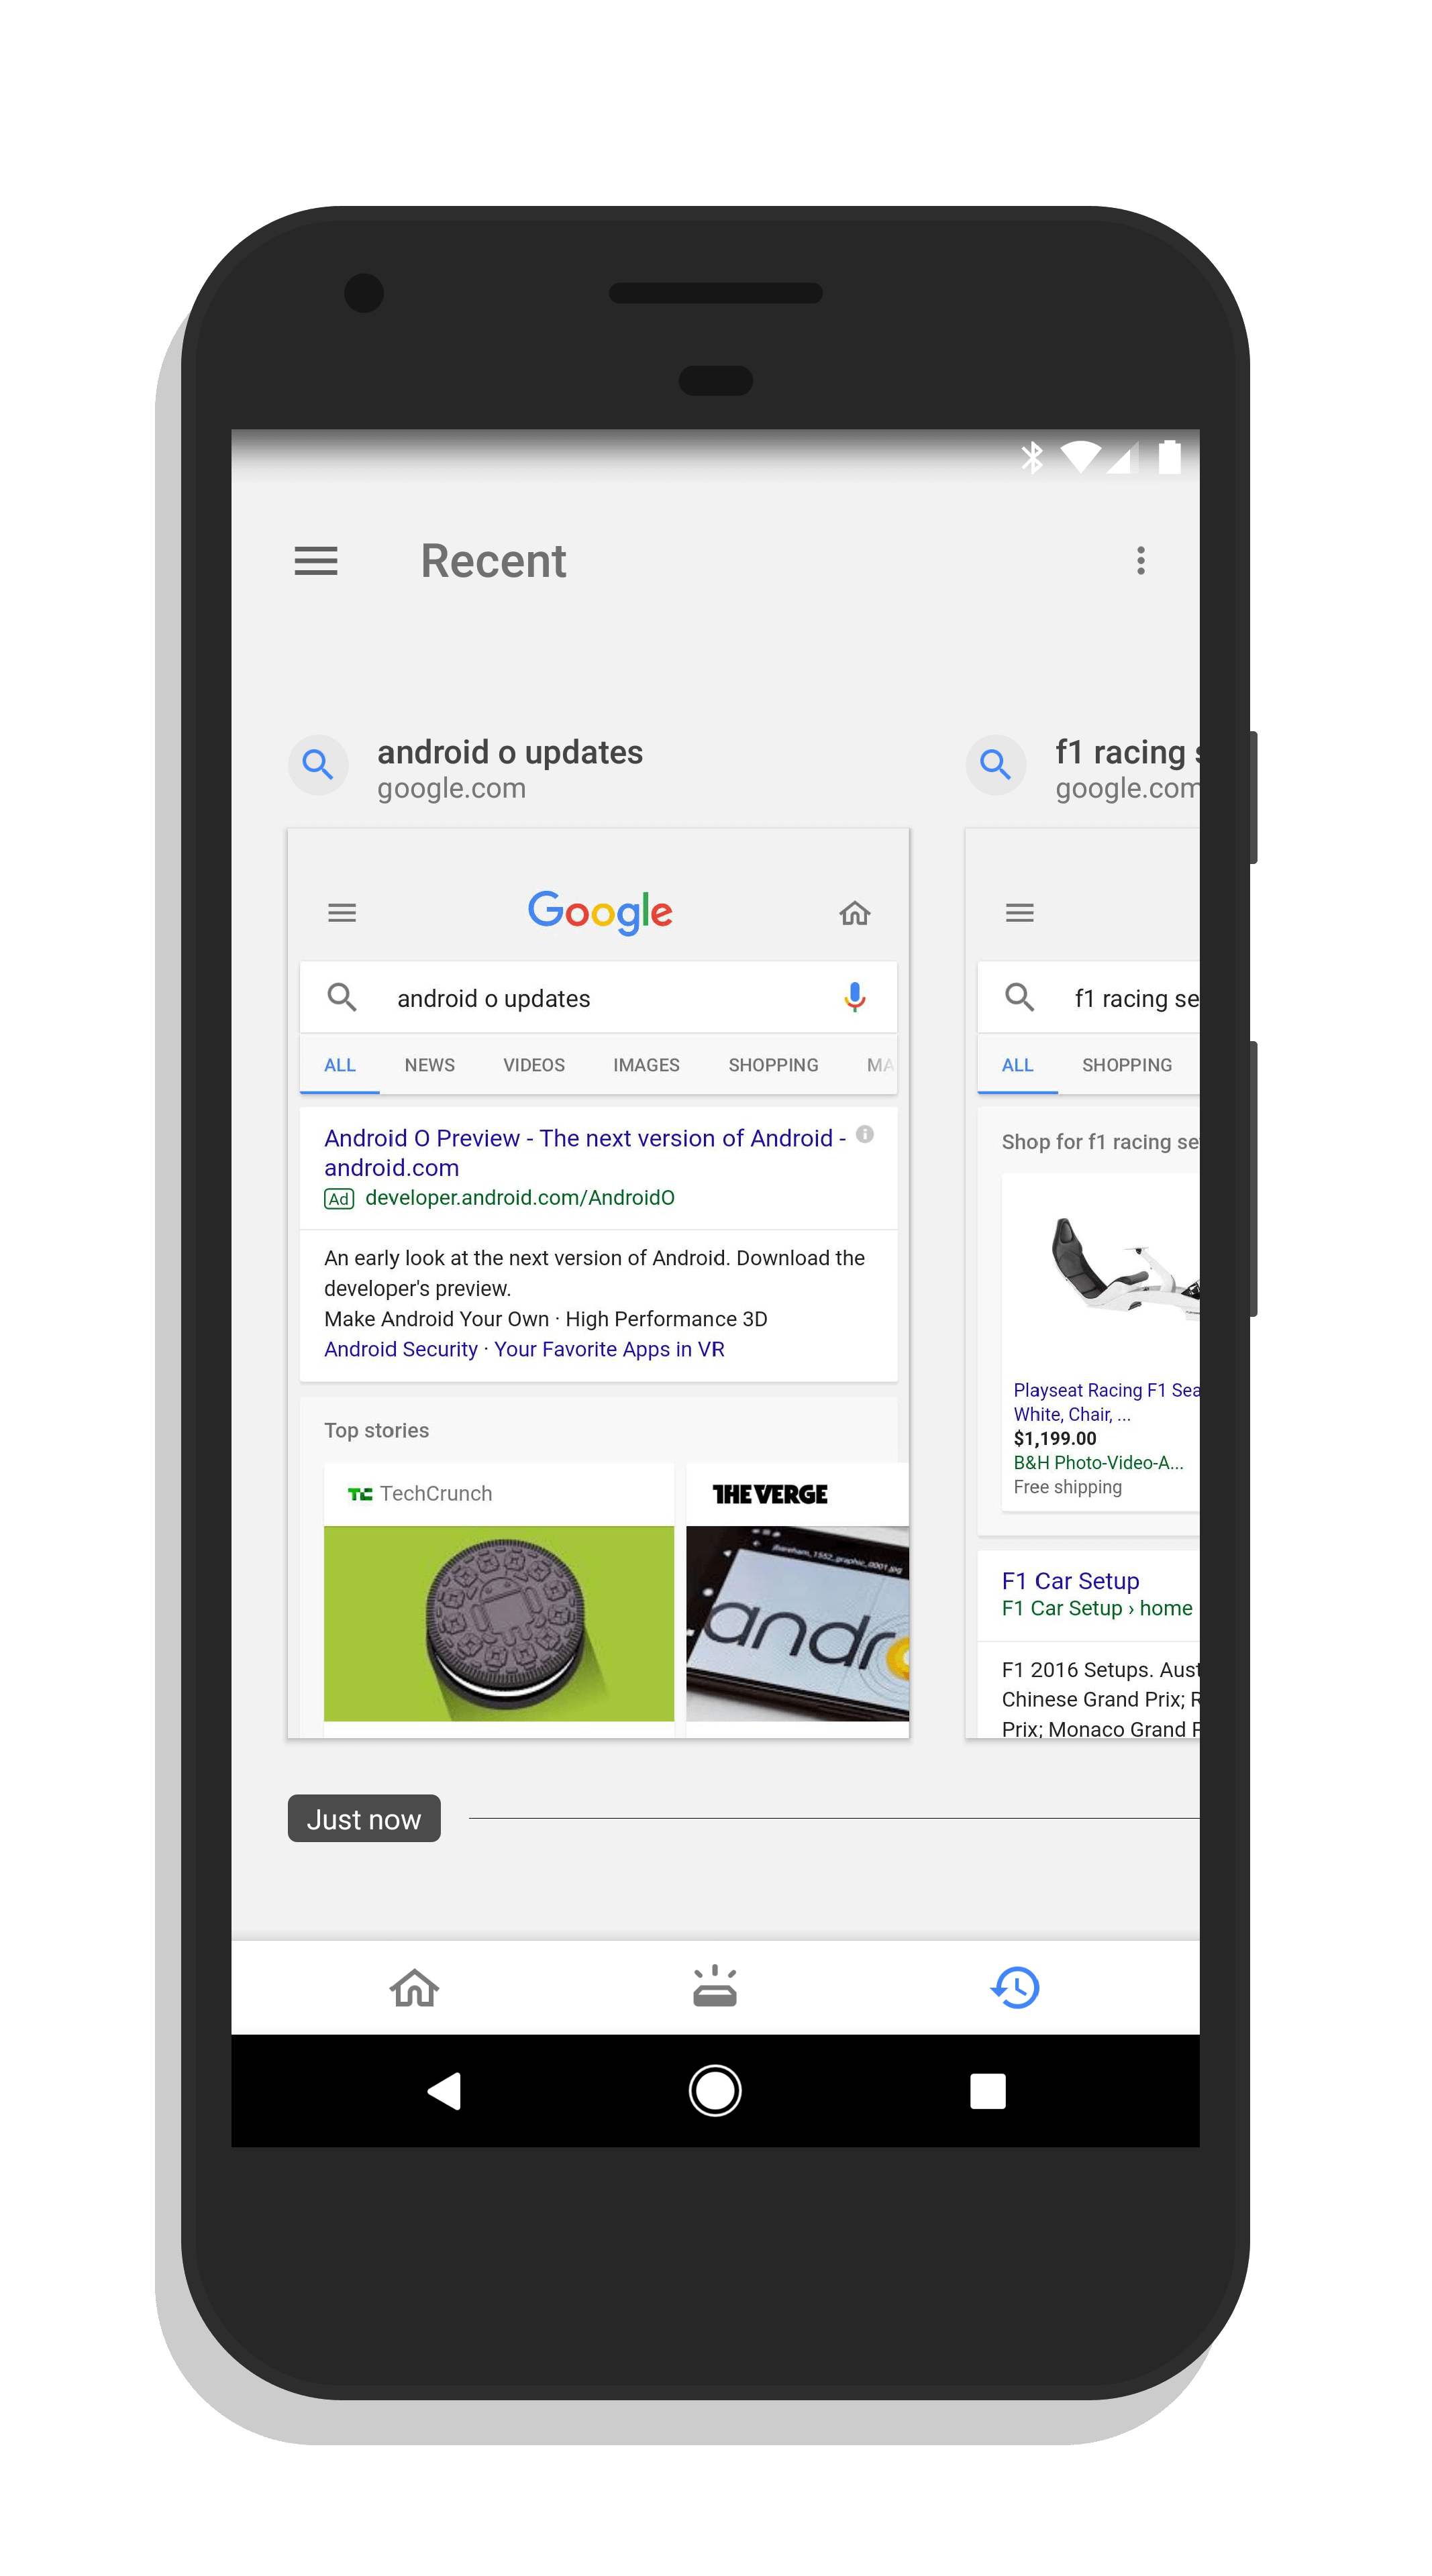 Recent Tab in Google Feed